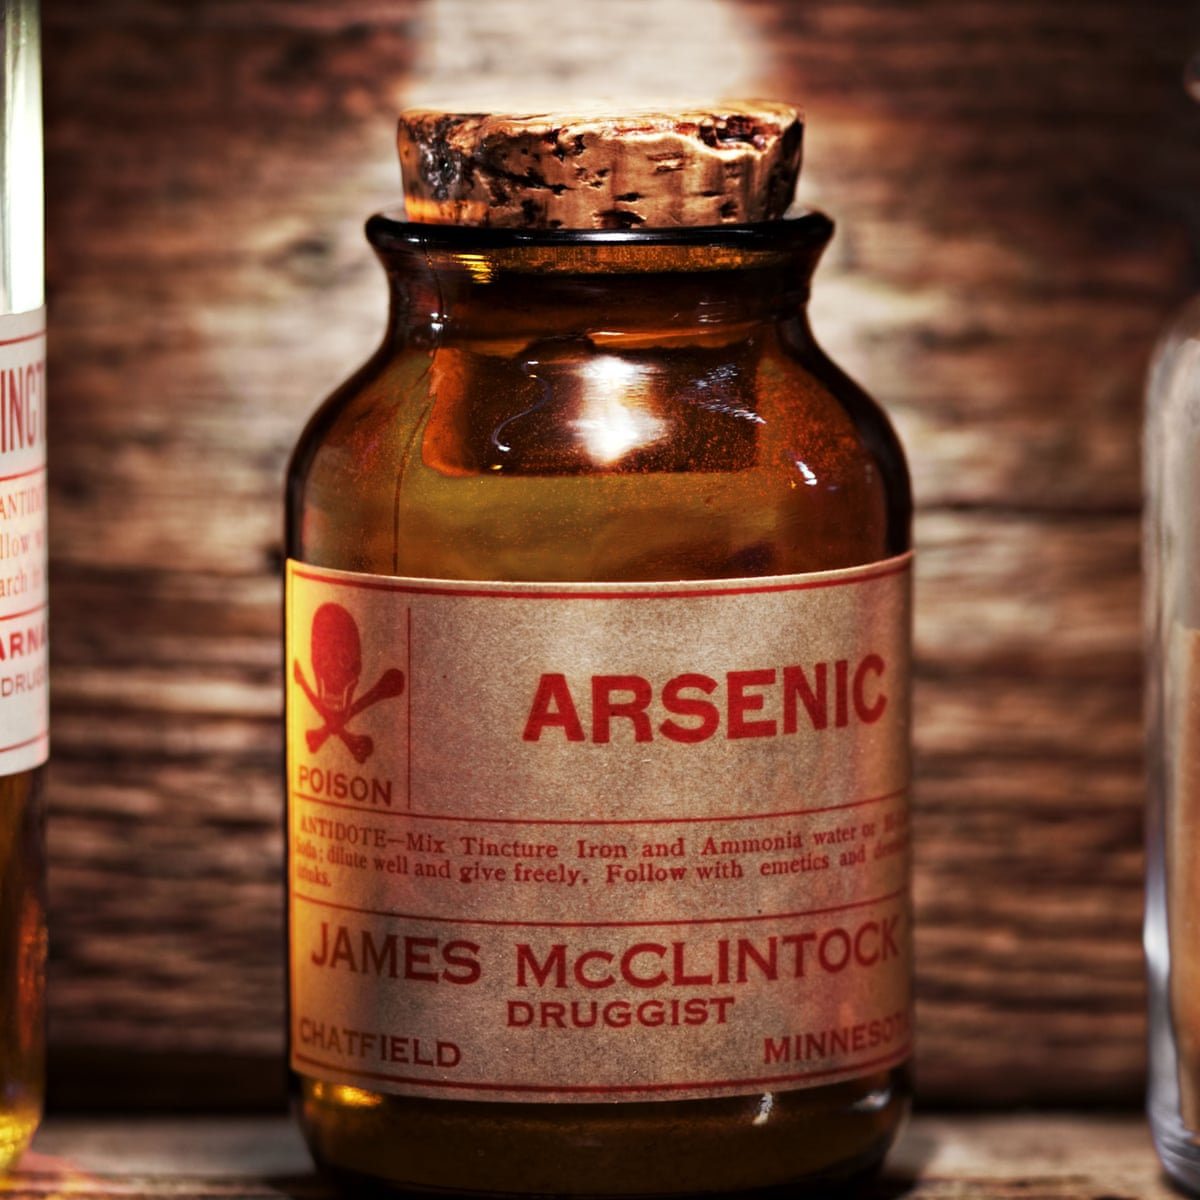 Arsenic was their poison – we have tobacco, guns and sugar | David ...